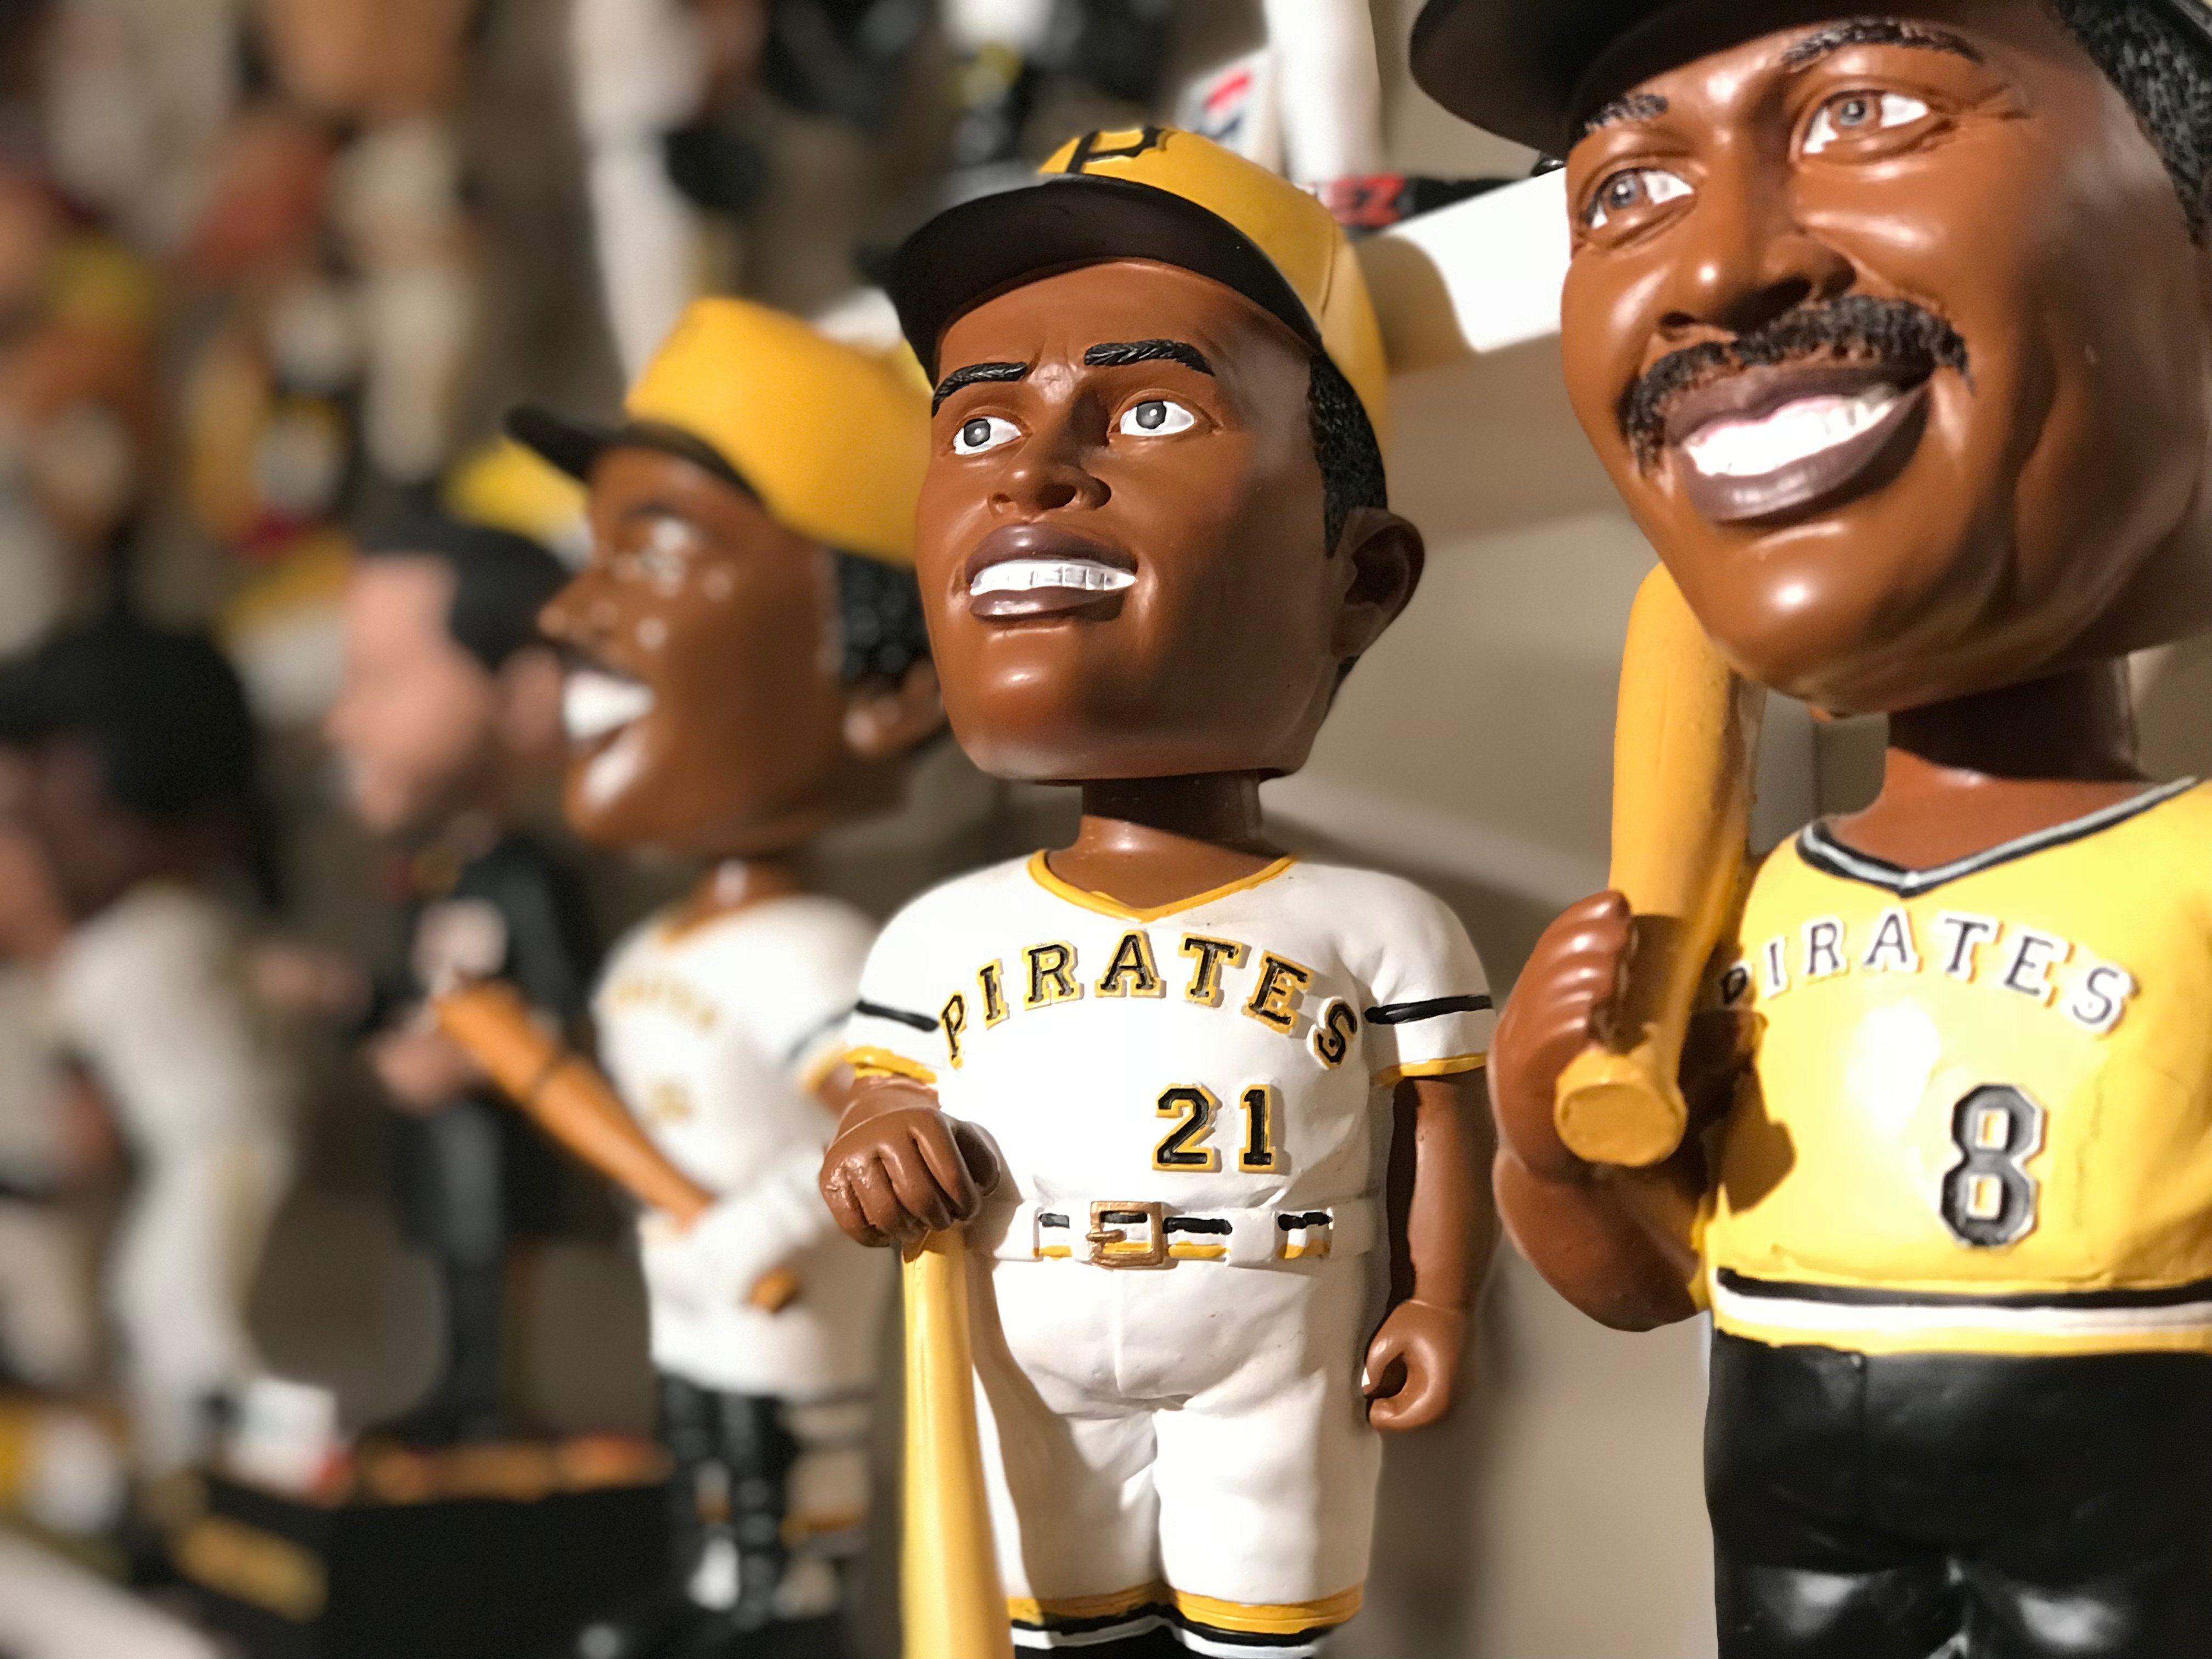 Pittsburgh Northside Agency bobbleheads